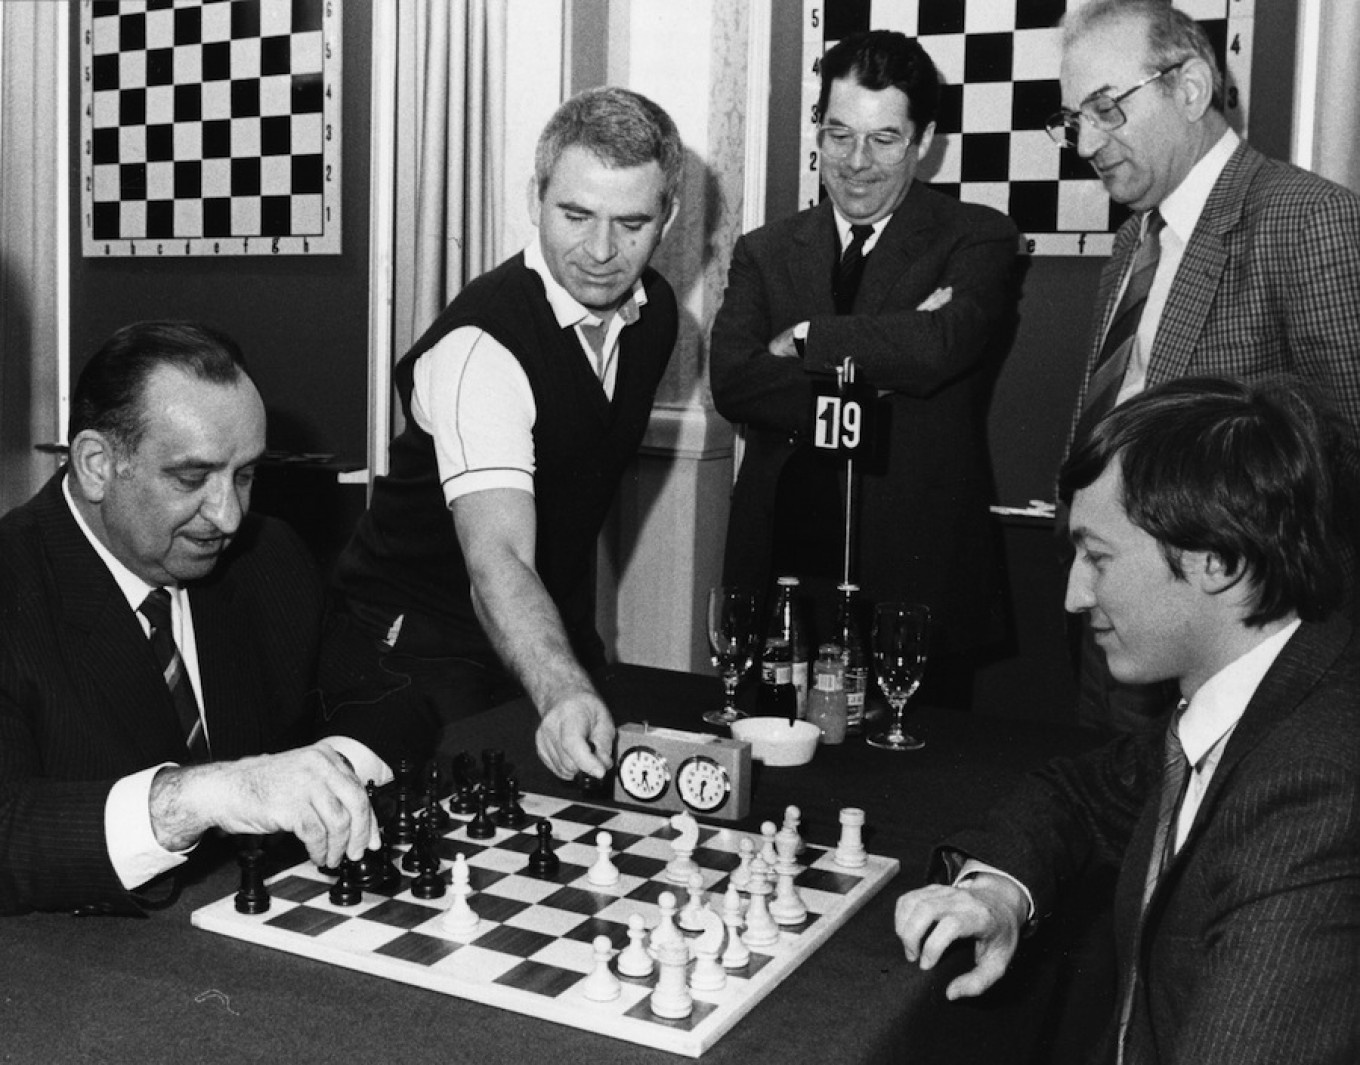 Austrian Chancellor Alfred Sinowatz opens the Chess Tournament on Jan. 6, 1986, in Vienna,, here playing against former World Champion Anatoly Karpov. Holzner / AP